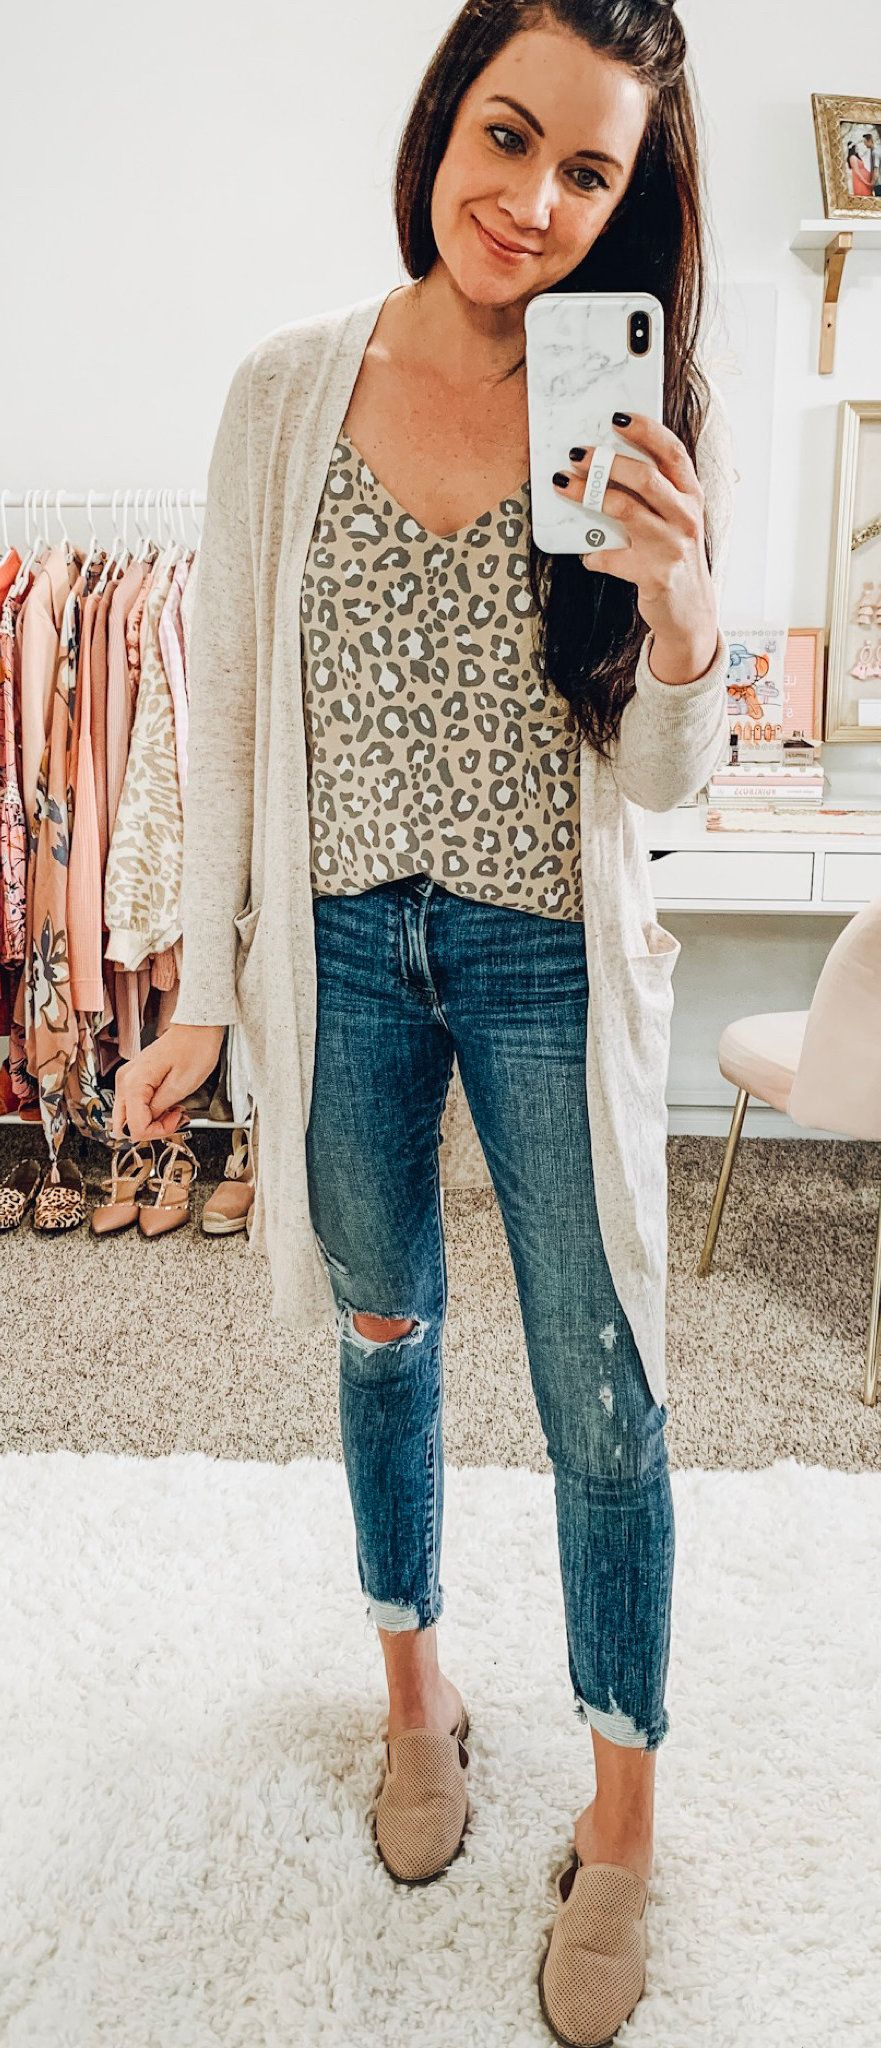 white and brown leopard-print inner top #spring #outfits